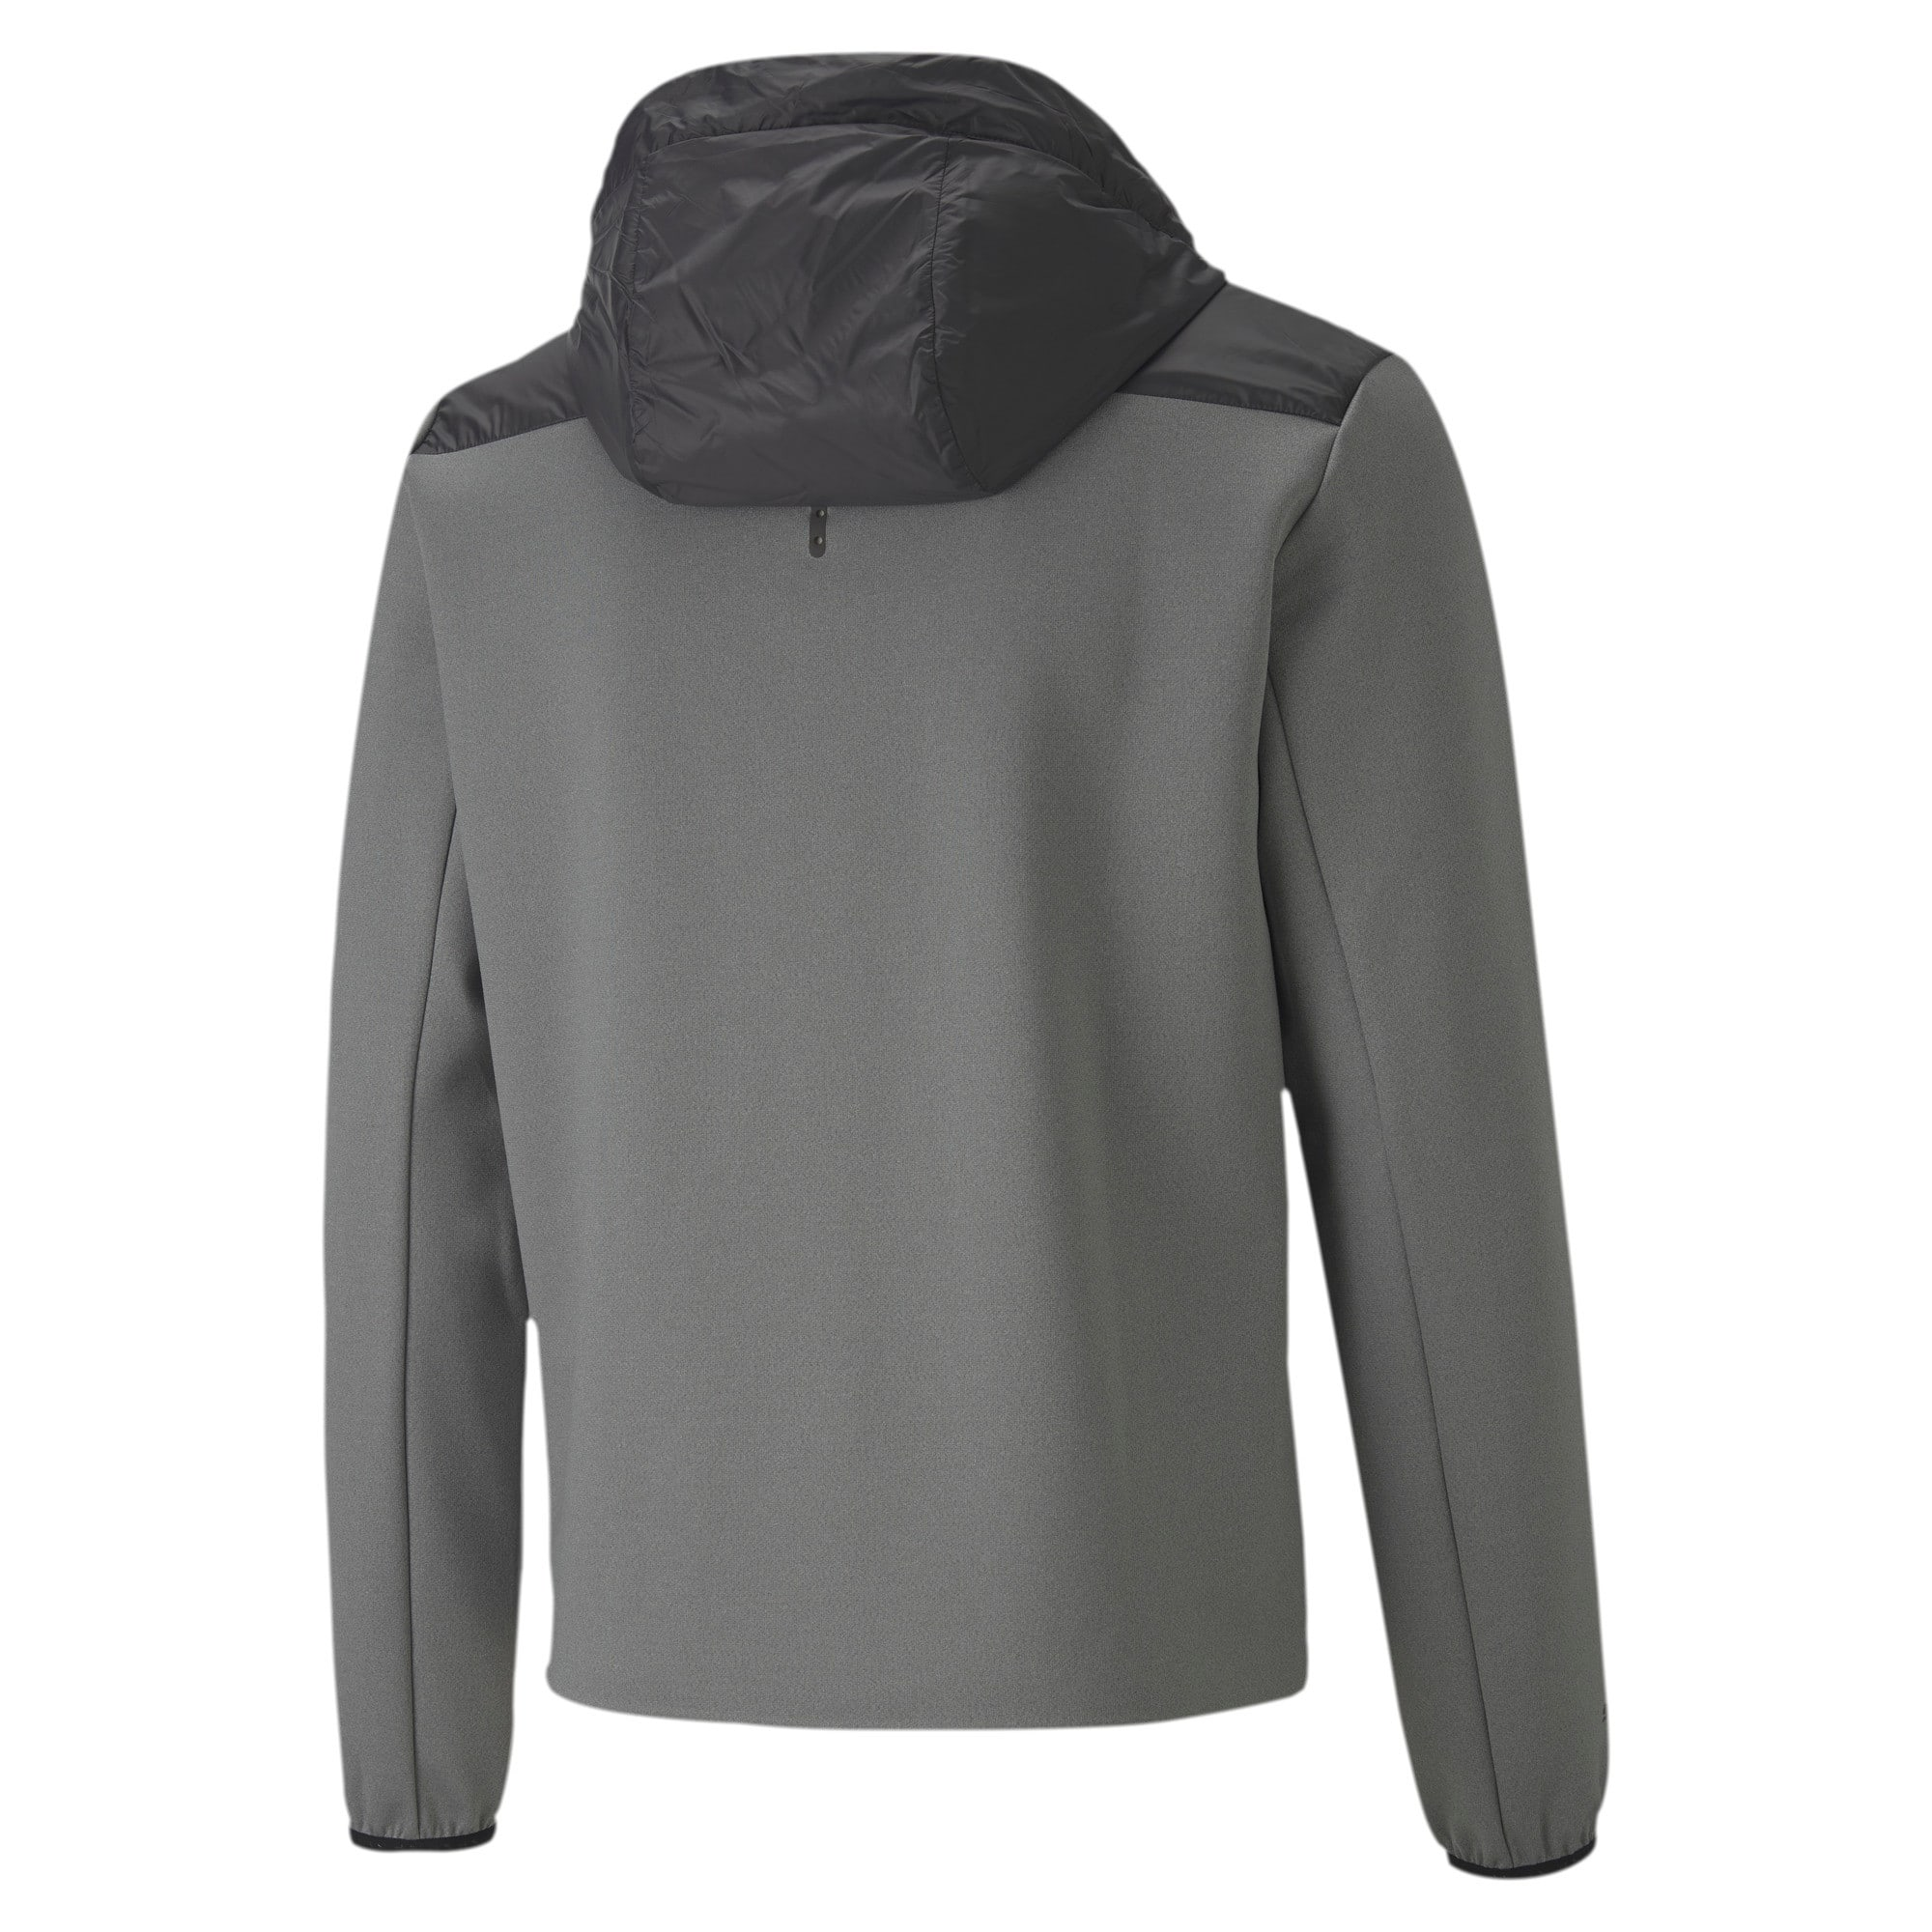 Thumbnail 5 of Porsche Design Spacer Hooded Men's Midlayer, Medium Gray Heather, medium